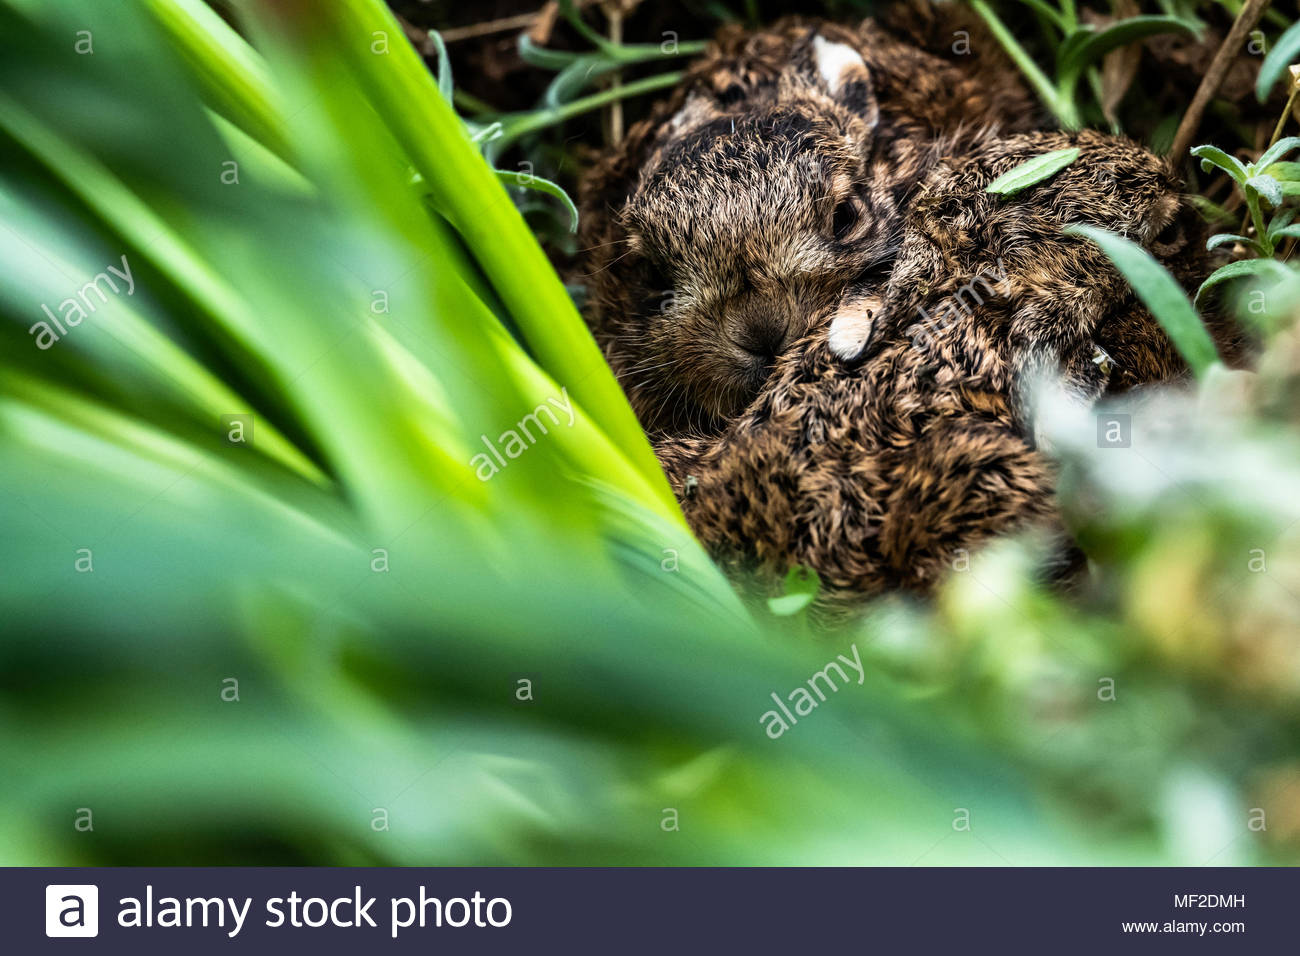 Oxnam, Jedburgh, Scottish Borders, UK. 24th April 2018. A pair of Leverets in a flower bed discovered by a gardener while weeding. Hares will leave their offspring in secluded forms and feed them a couple of times a day, spreading the larger litters about to avoid predation. Chris Strickland / Alamy Live News - Stock Image